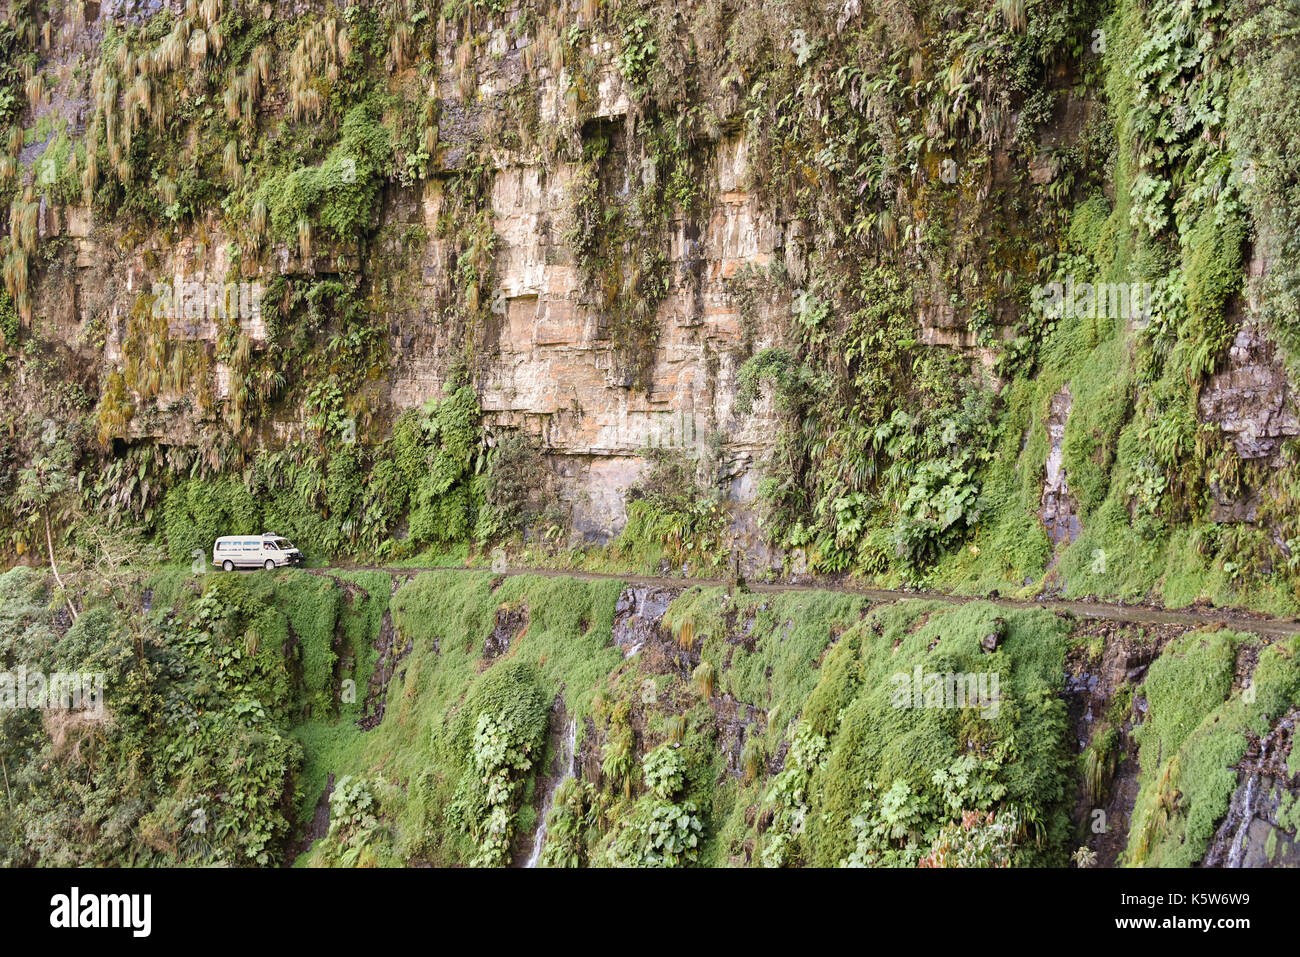 Camino de la muerte, Death Street, considered the most dangerous road in the world, Andes near La Paz, Bolivia - Stock Image